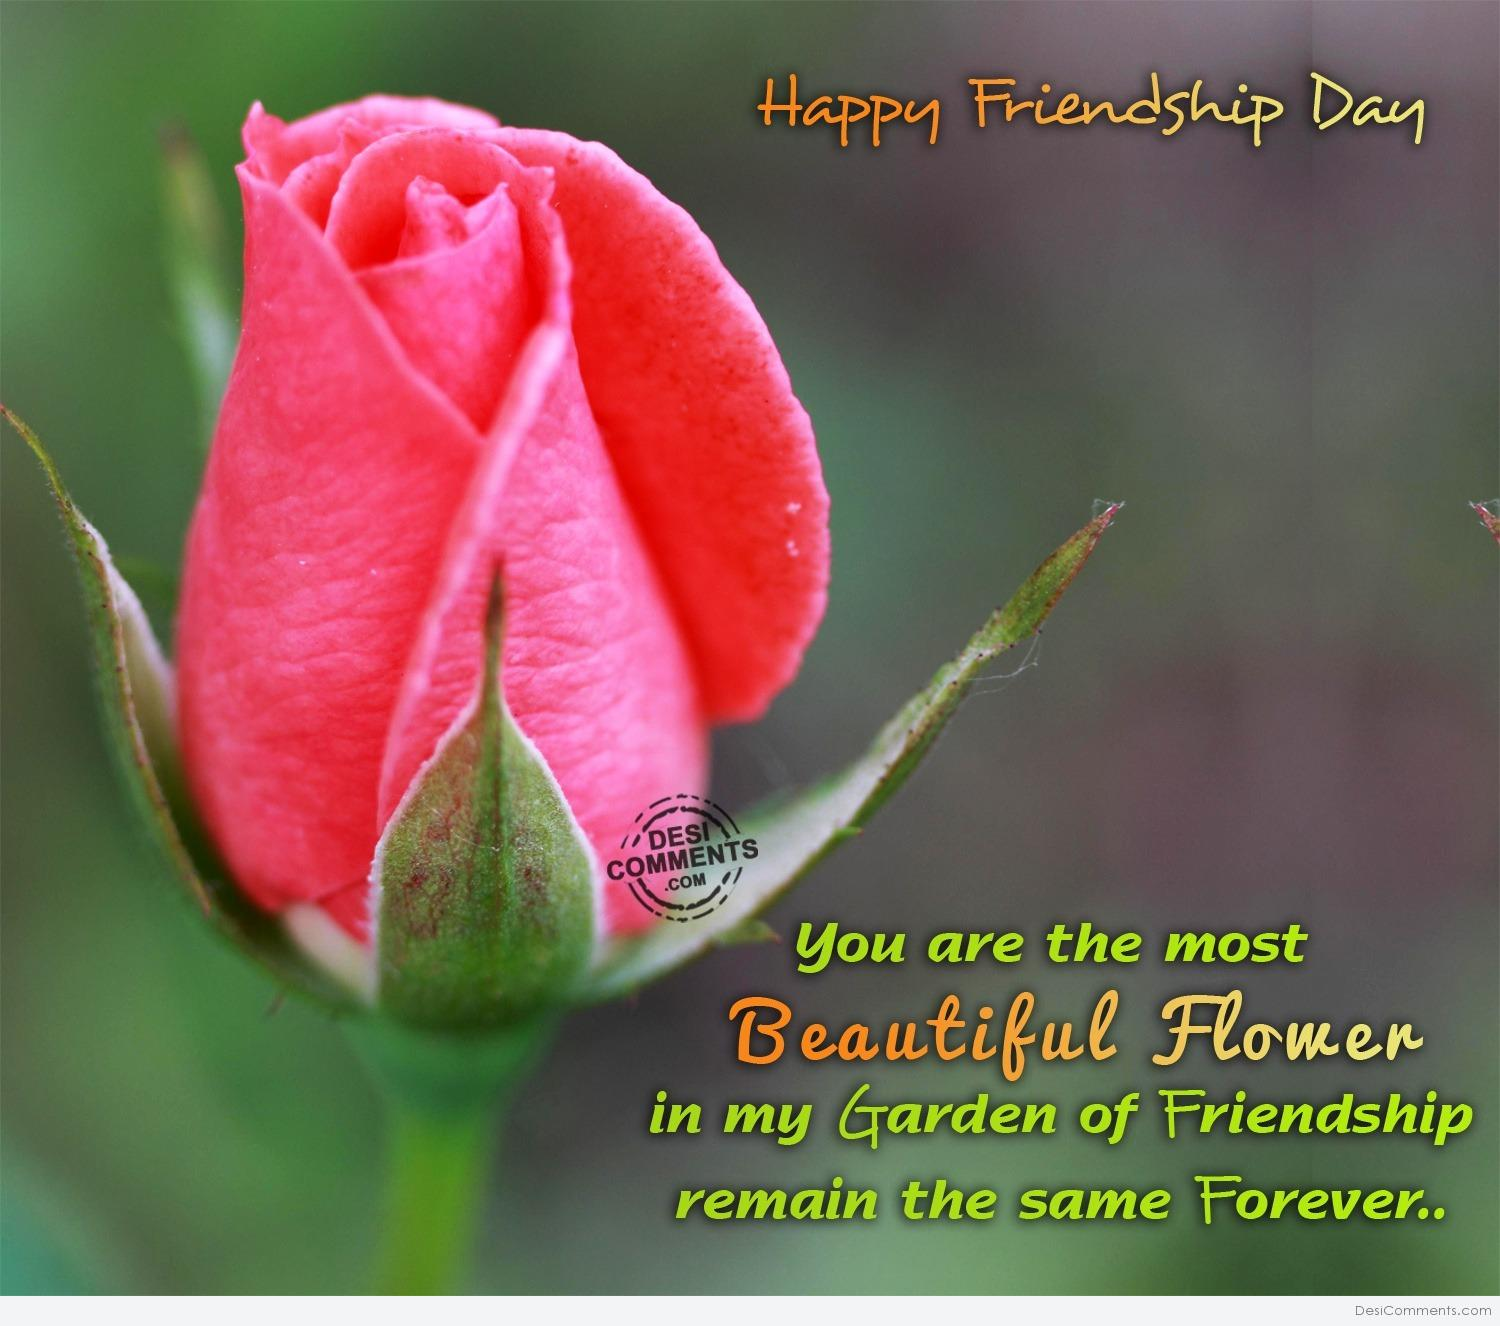 Friendship Day Pictures Images Graphics For Facebook Whatsapp